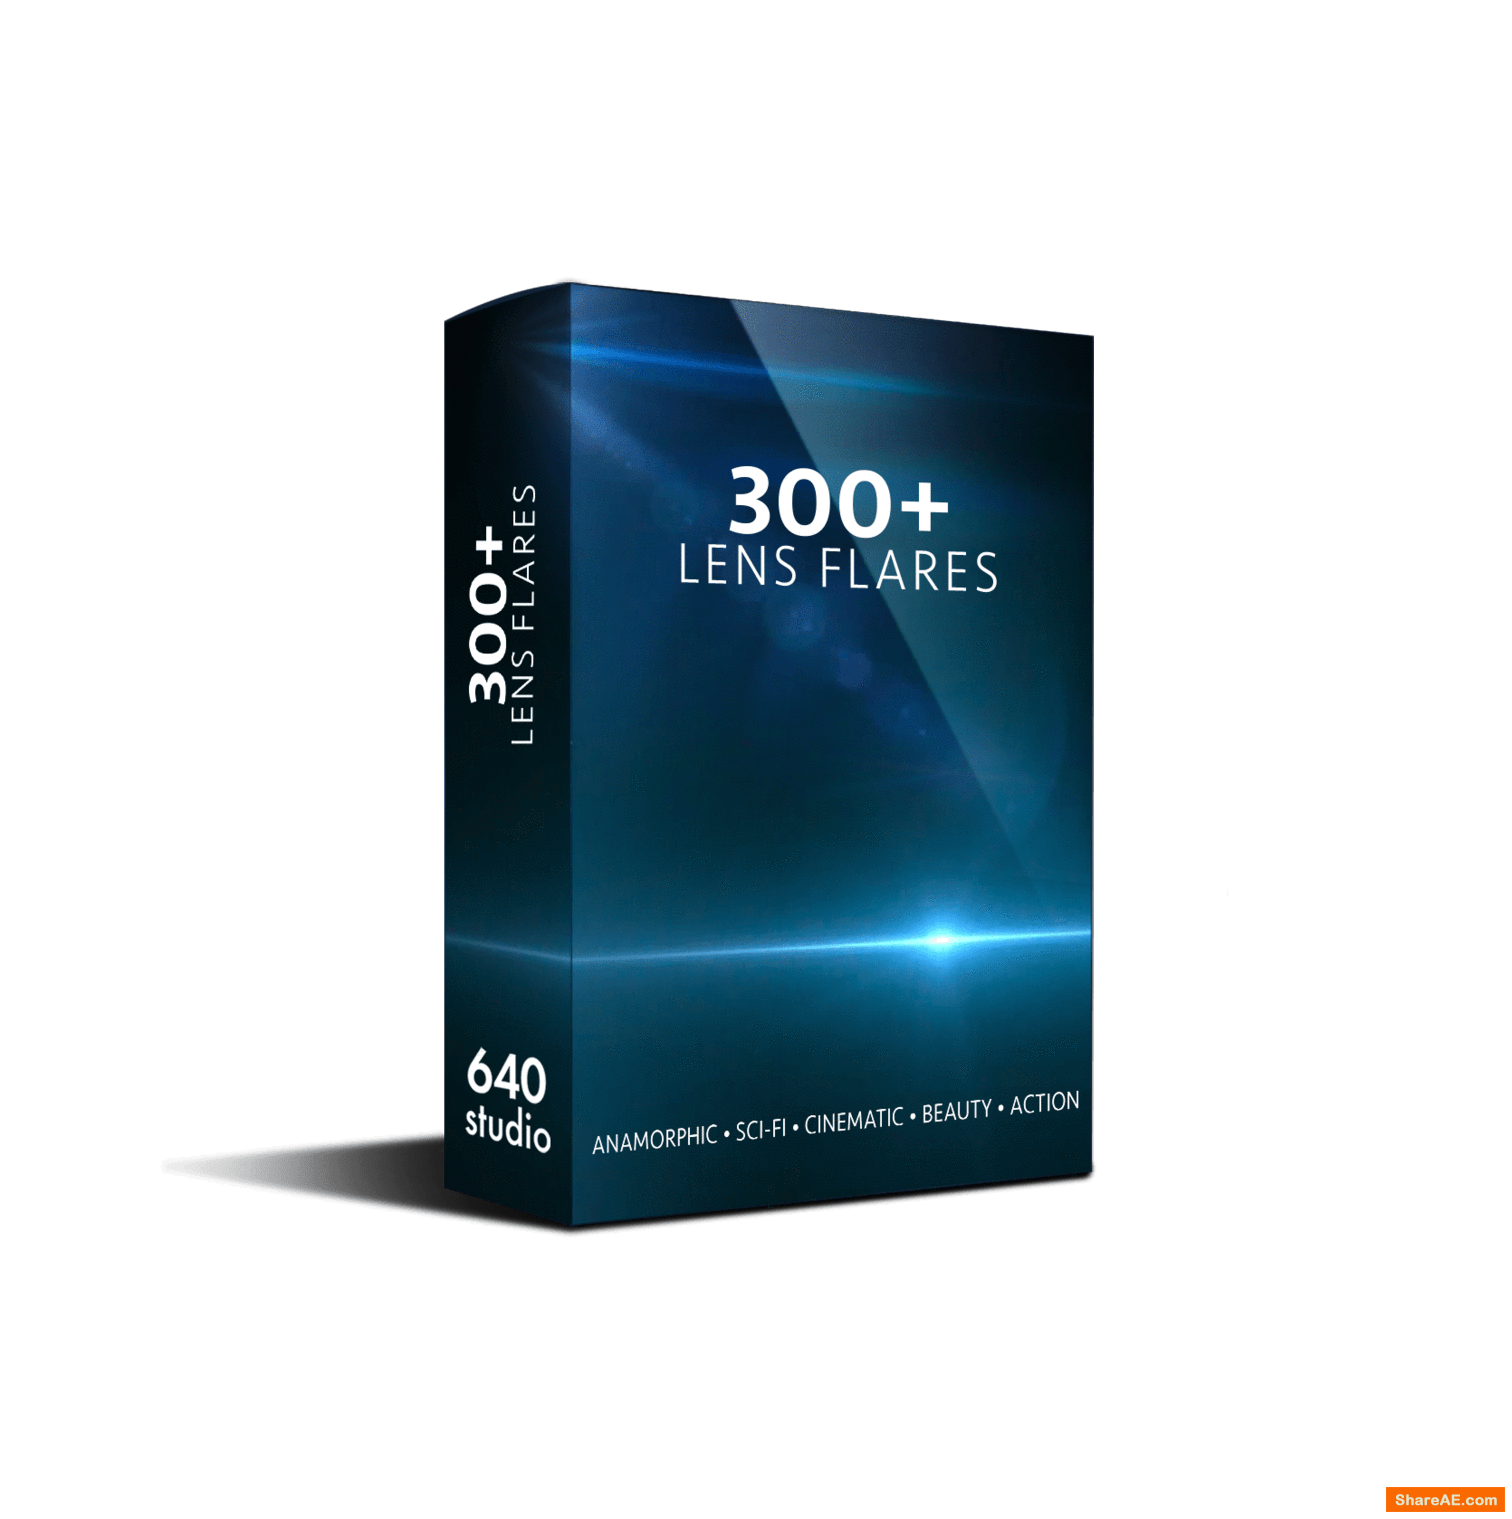 300+ Action Sci-fi Cinematic Anamorphic Lens Flares - 640studio